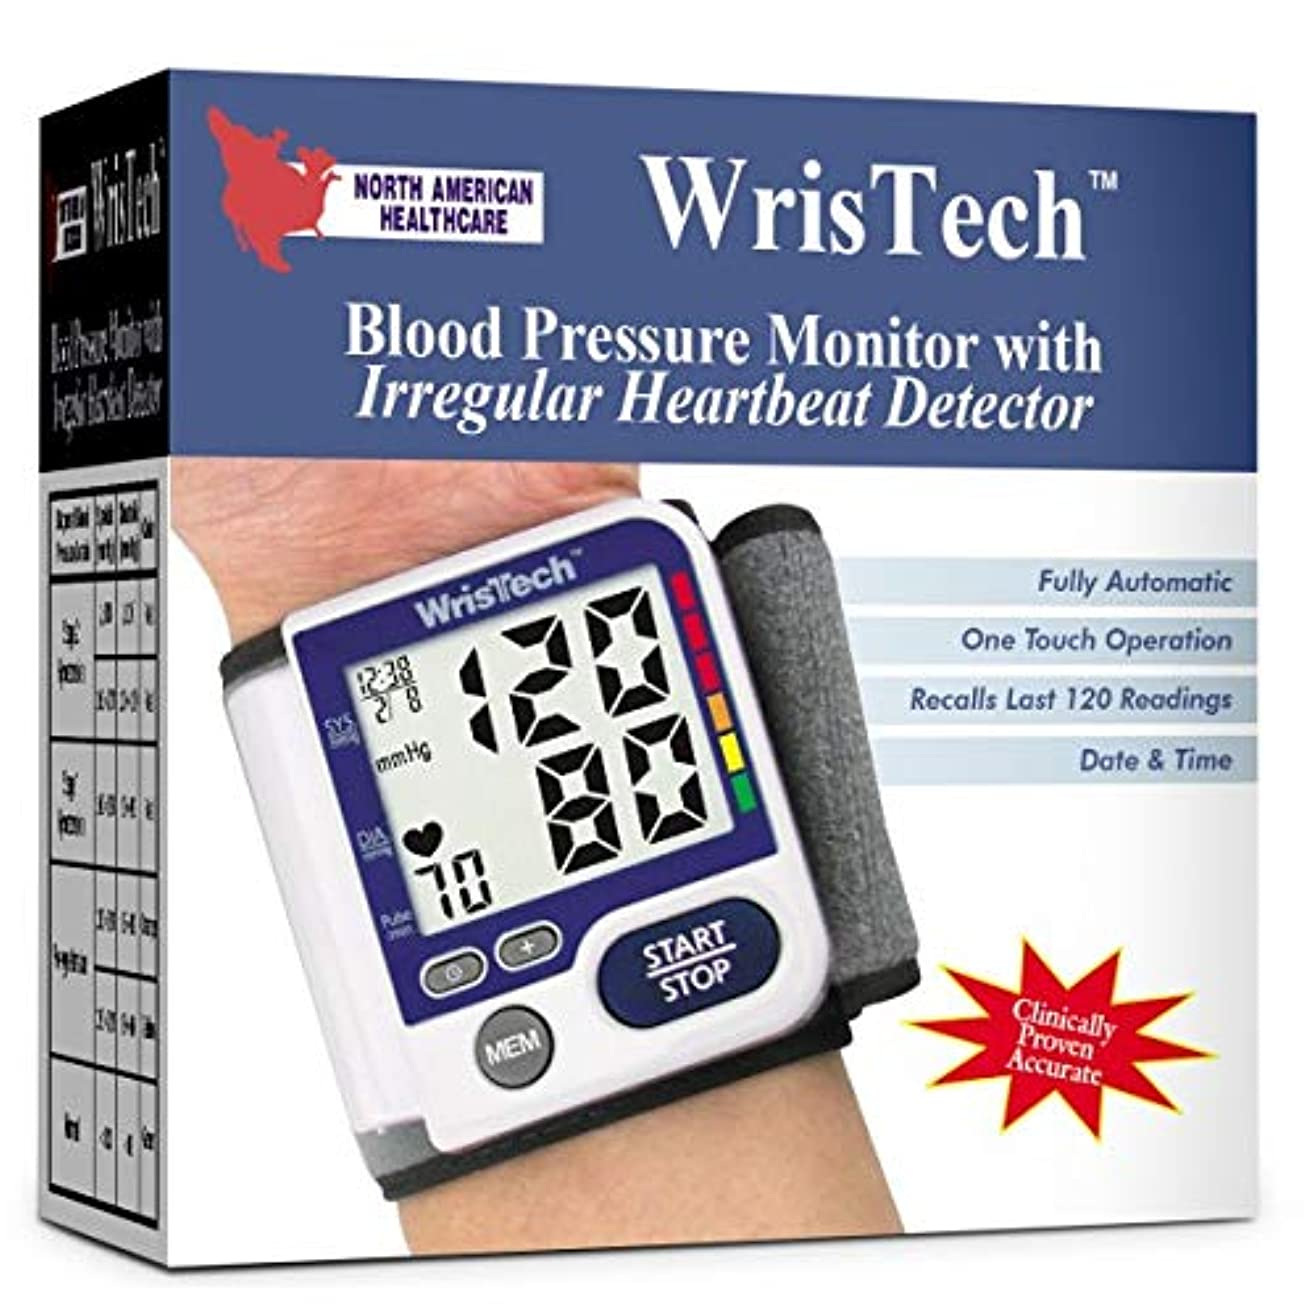 Blood Pressure Monitor Accurate Readings Fully Automatic Wrist Monitoring Meter with Irregular Heartbeat Detector and Includes Standard Wrist Cuff Size, White